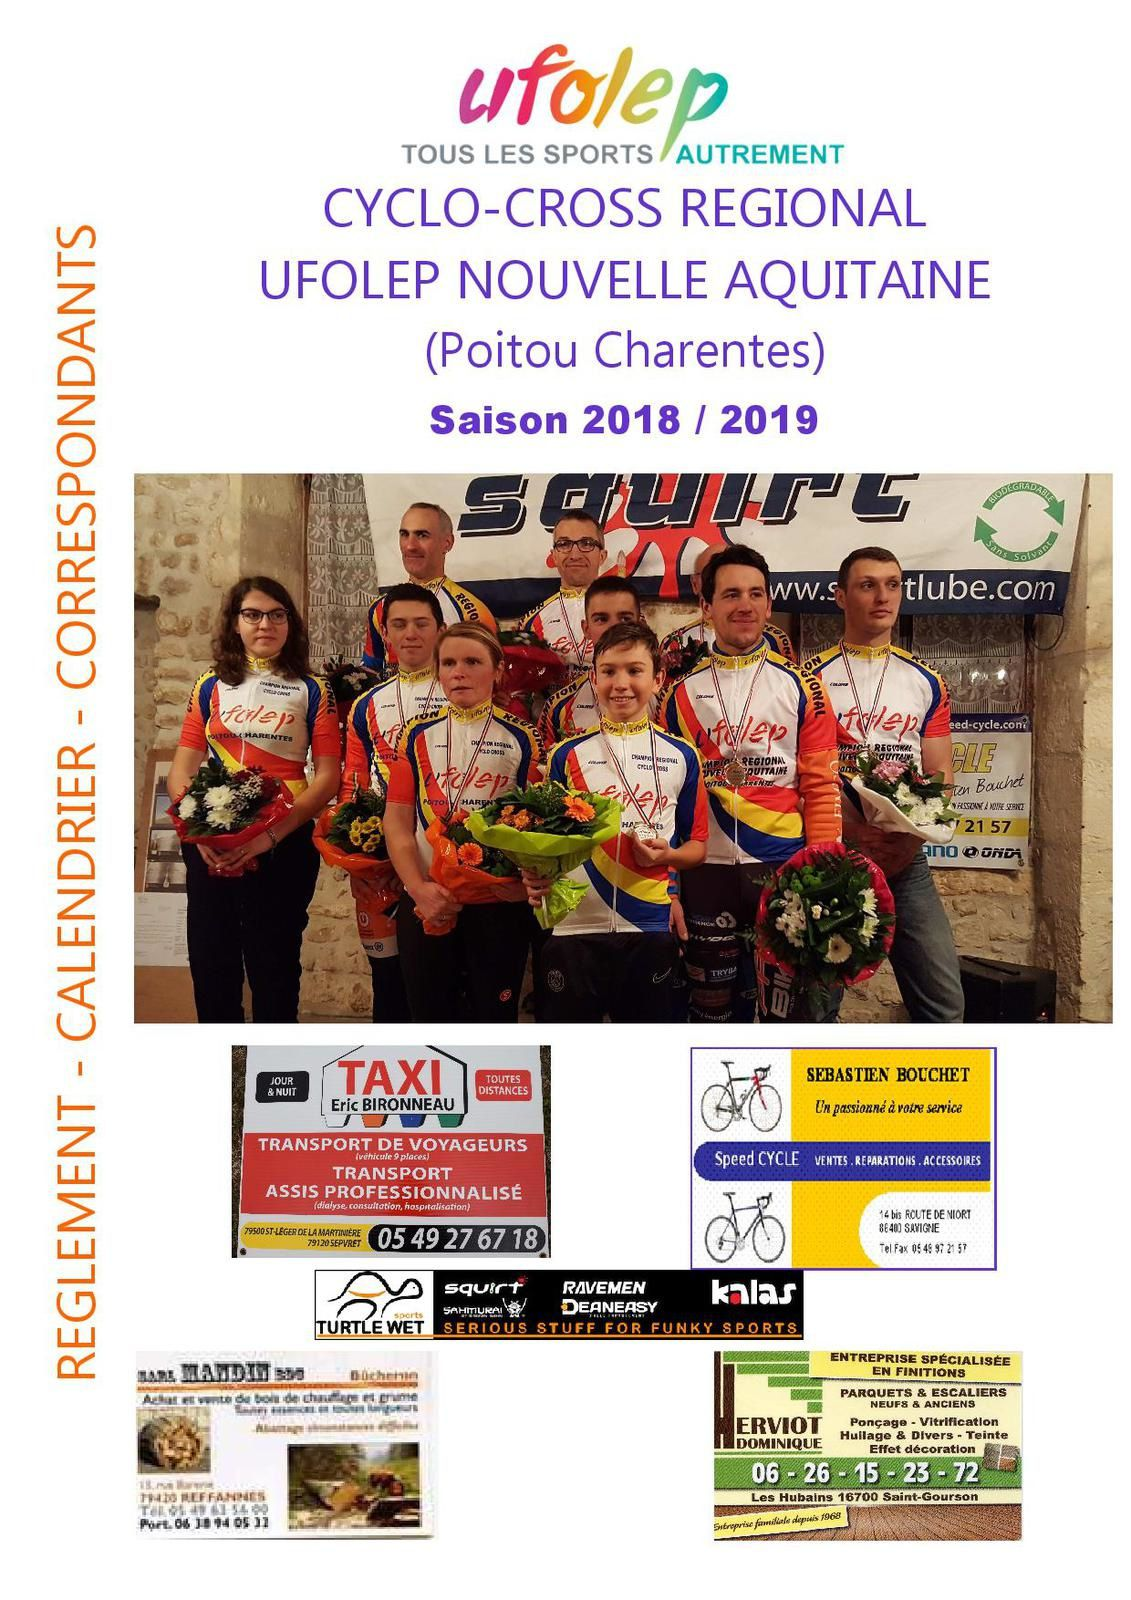 CALENDRIER 2018/2019 CYCLO CROSS REGIONAL UFOLEP NOUVELLE